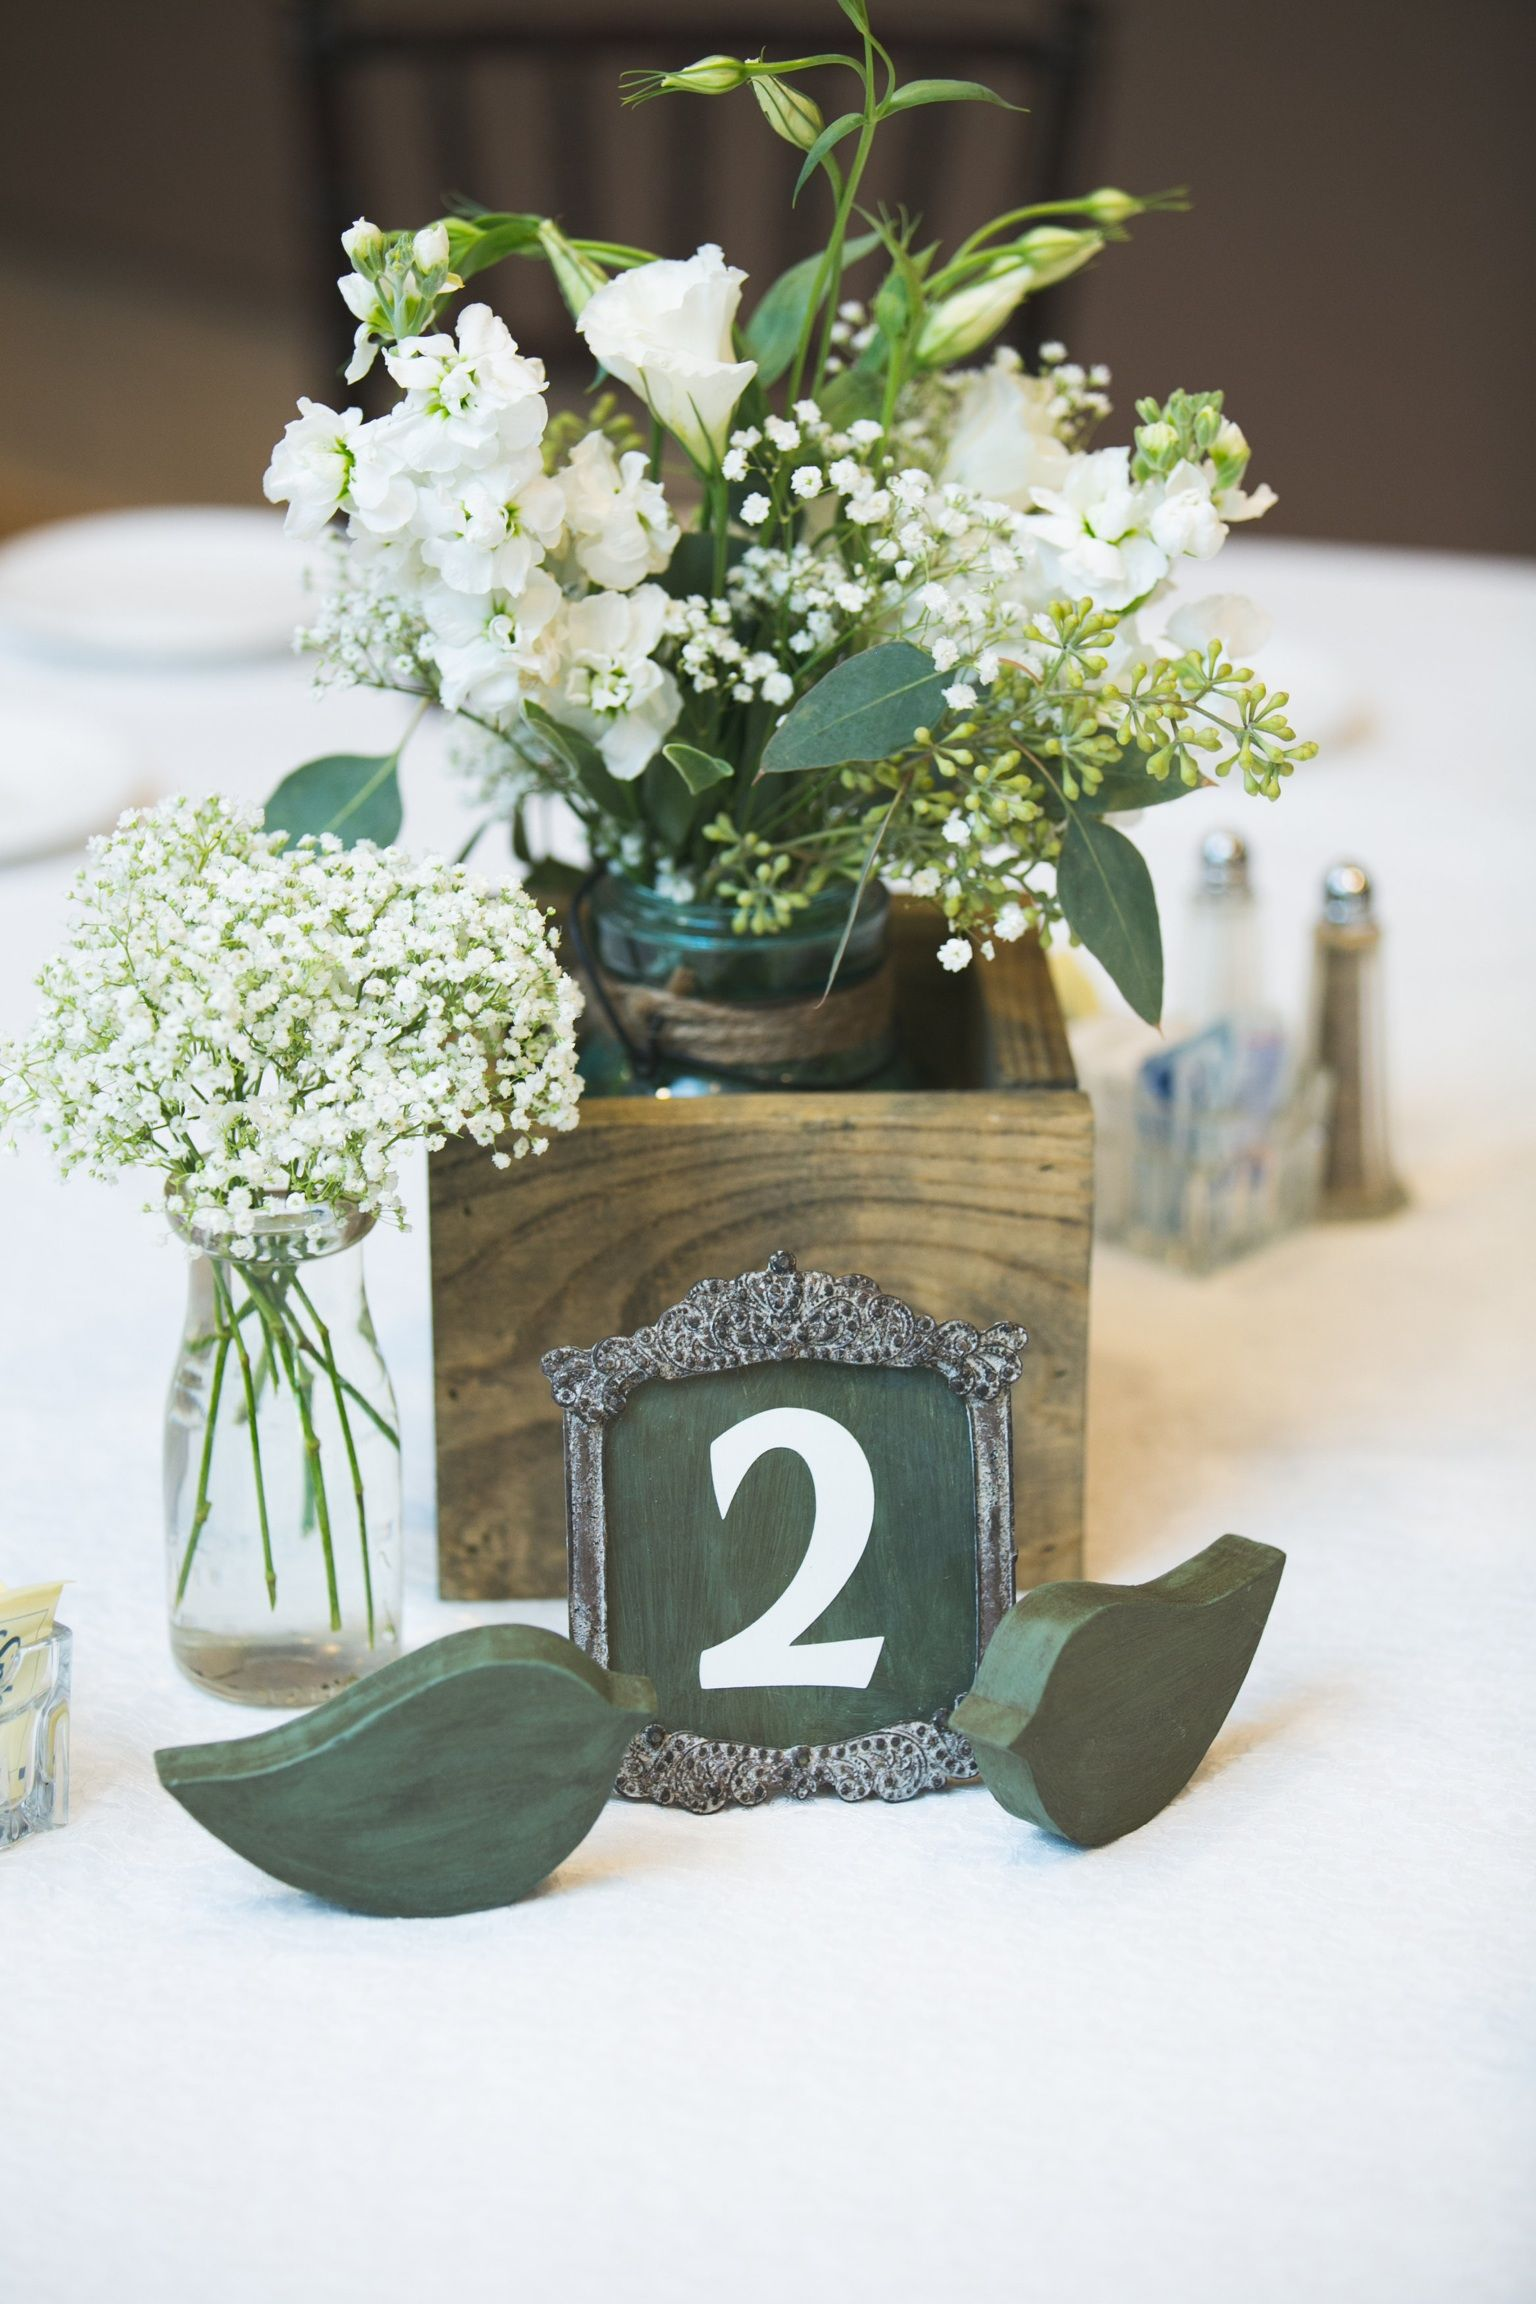 Simple White Stock Seeded Eucalyptus Babys Breath In Jars Wood